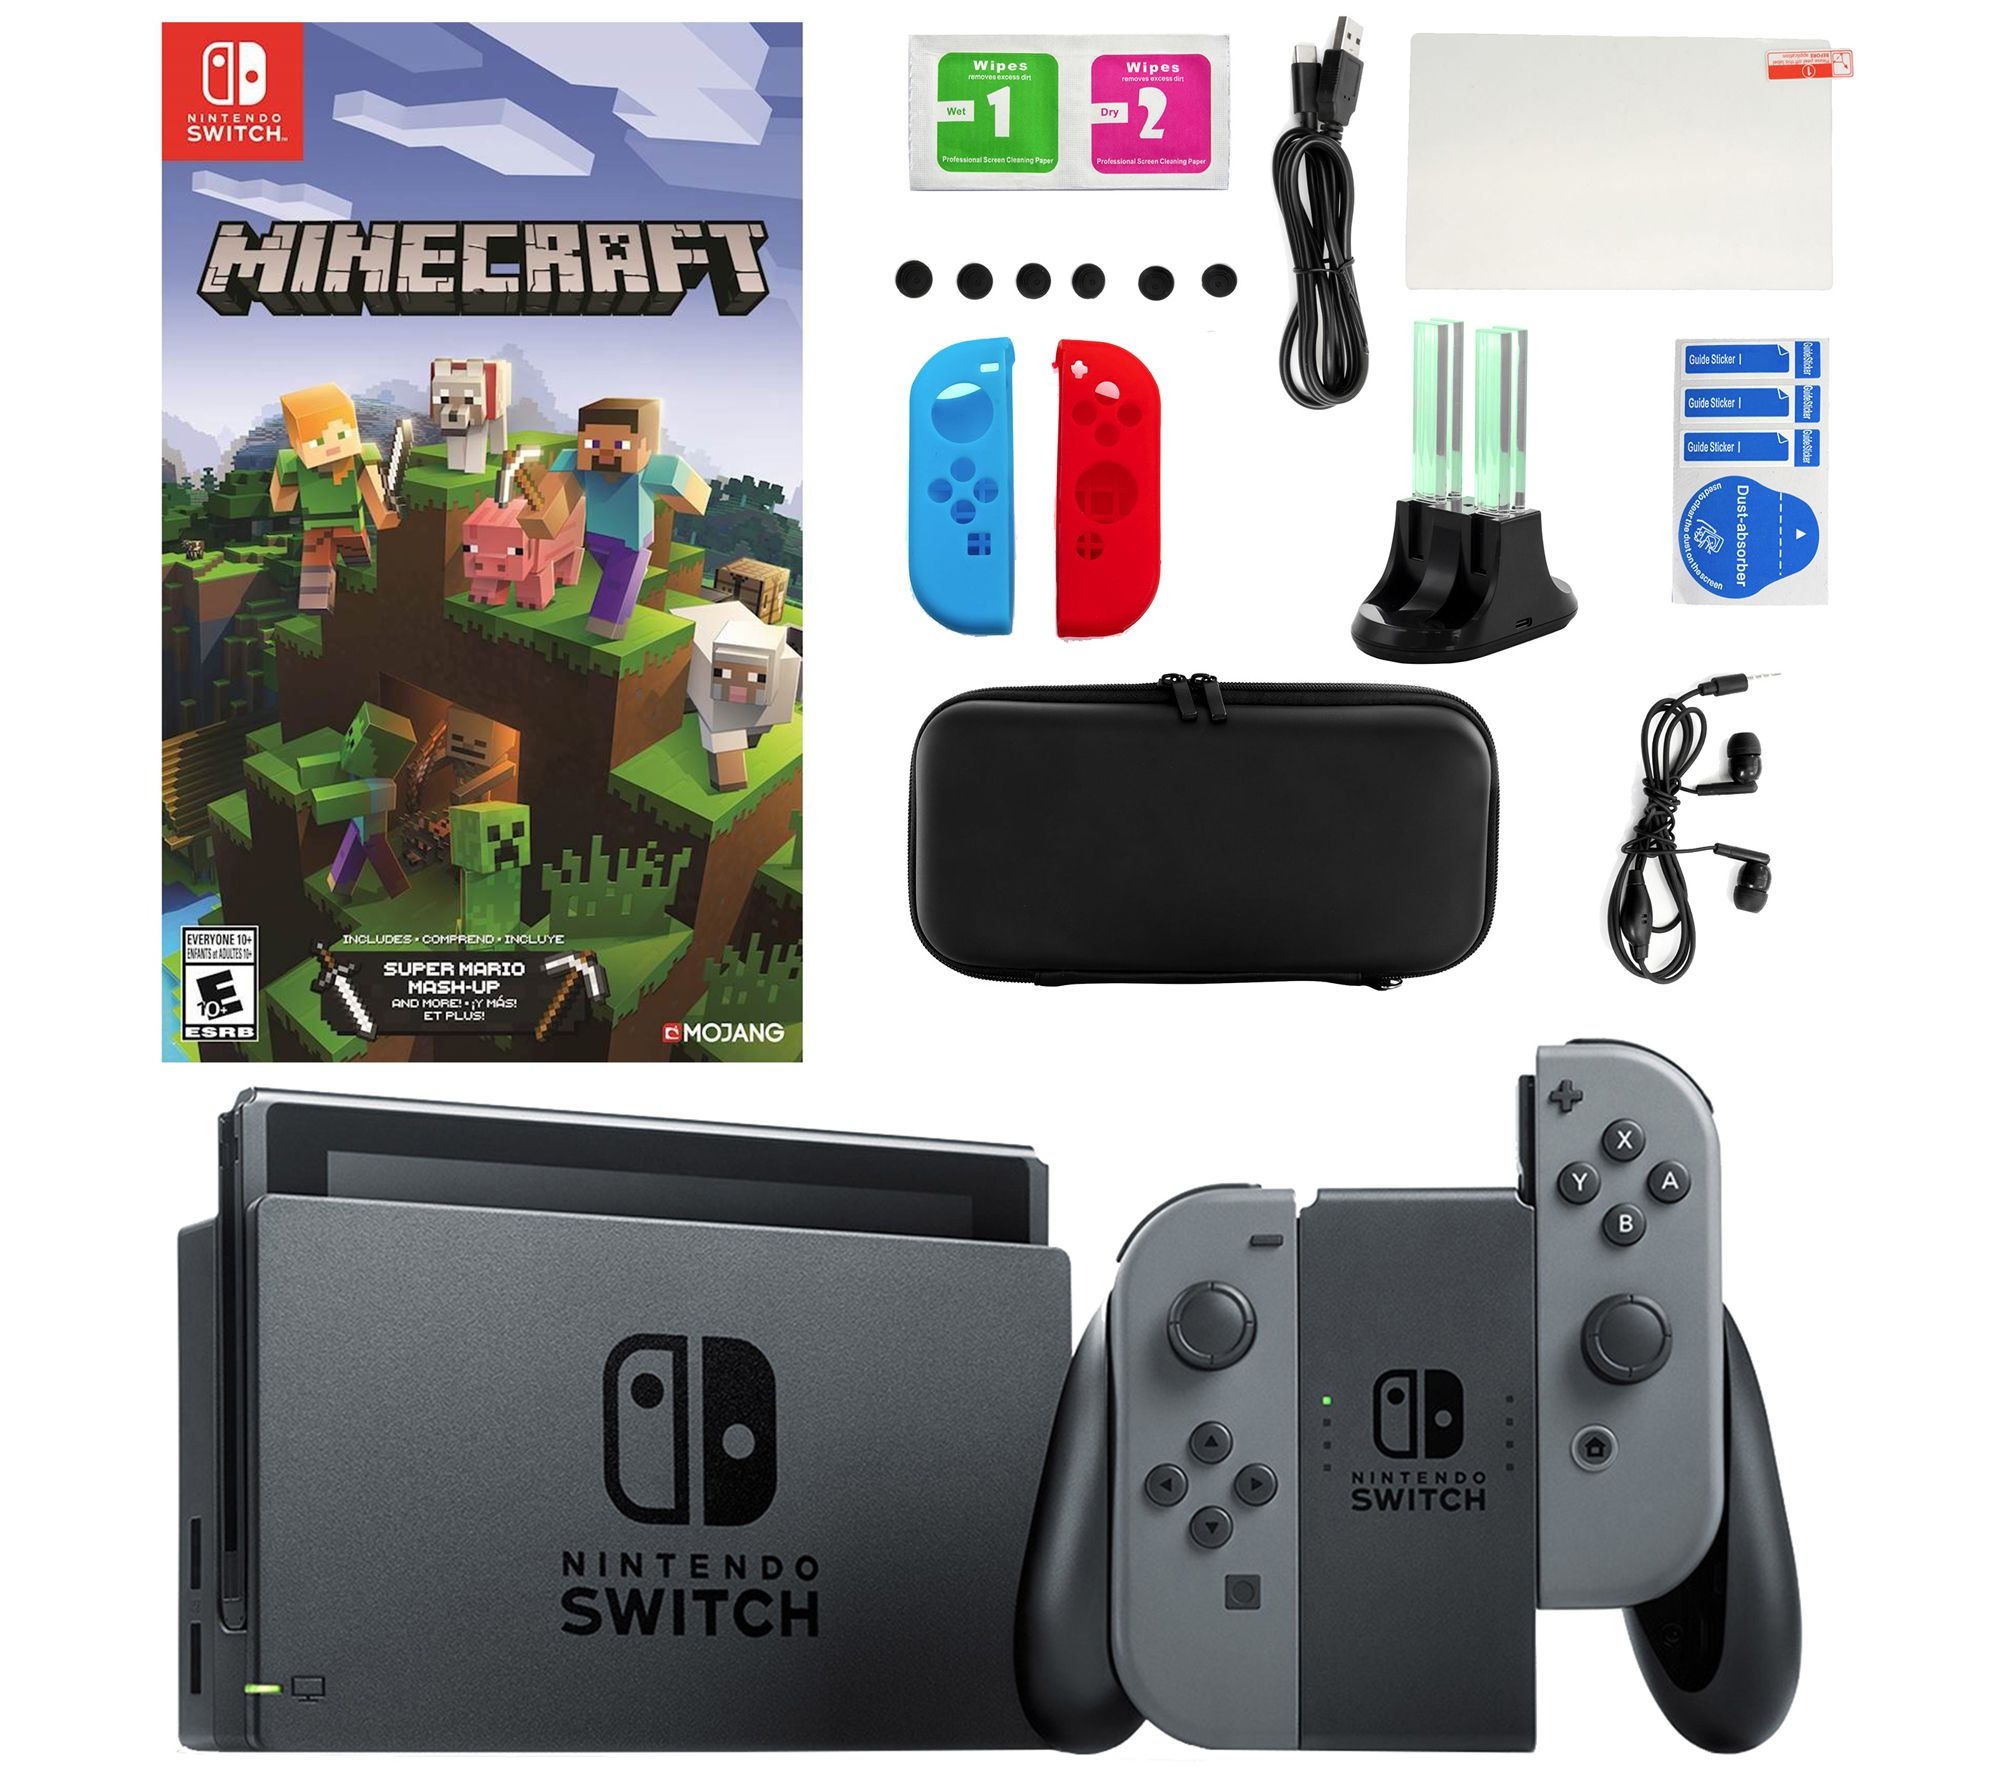 12% off a Nintendo Switch with Minecraft